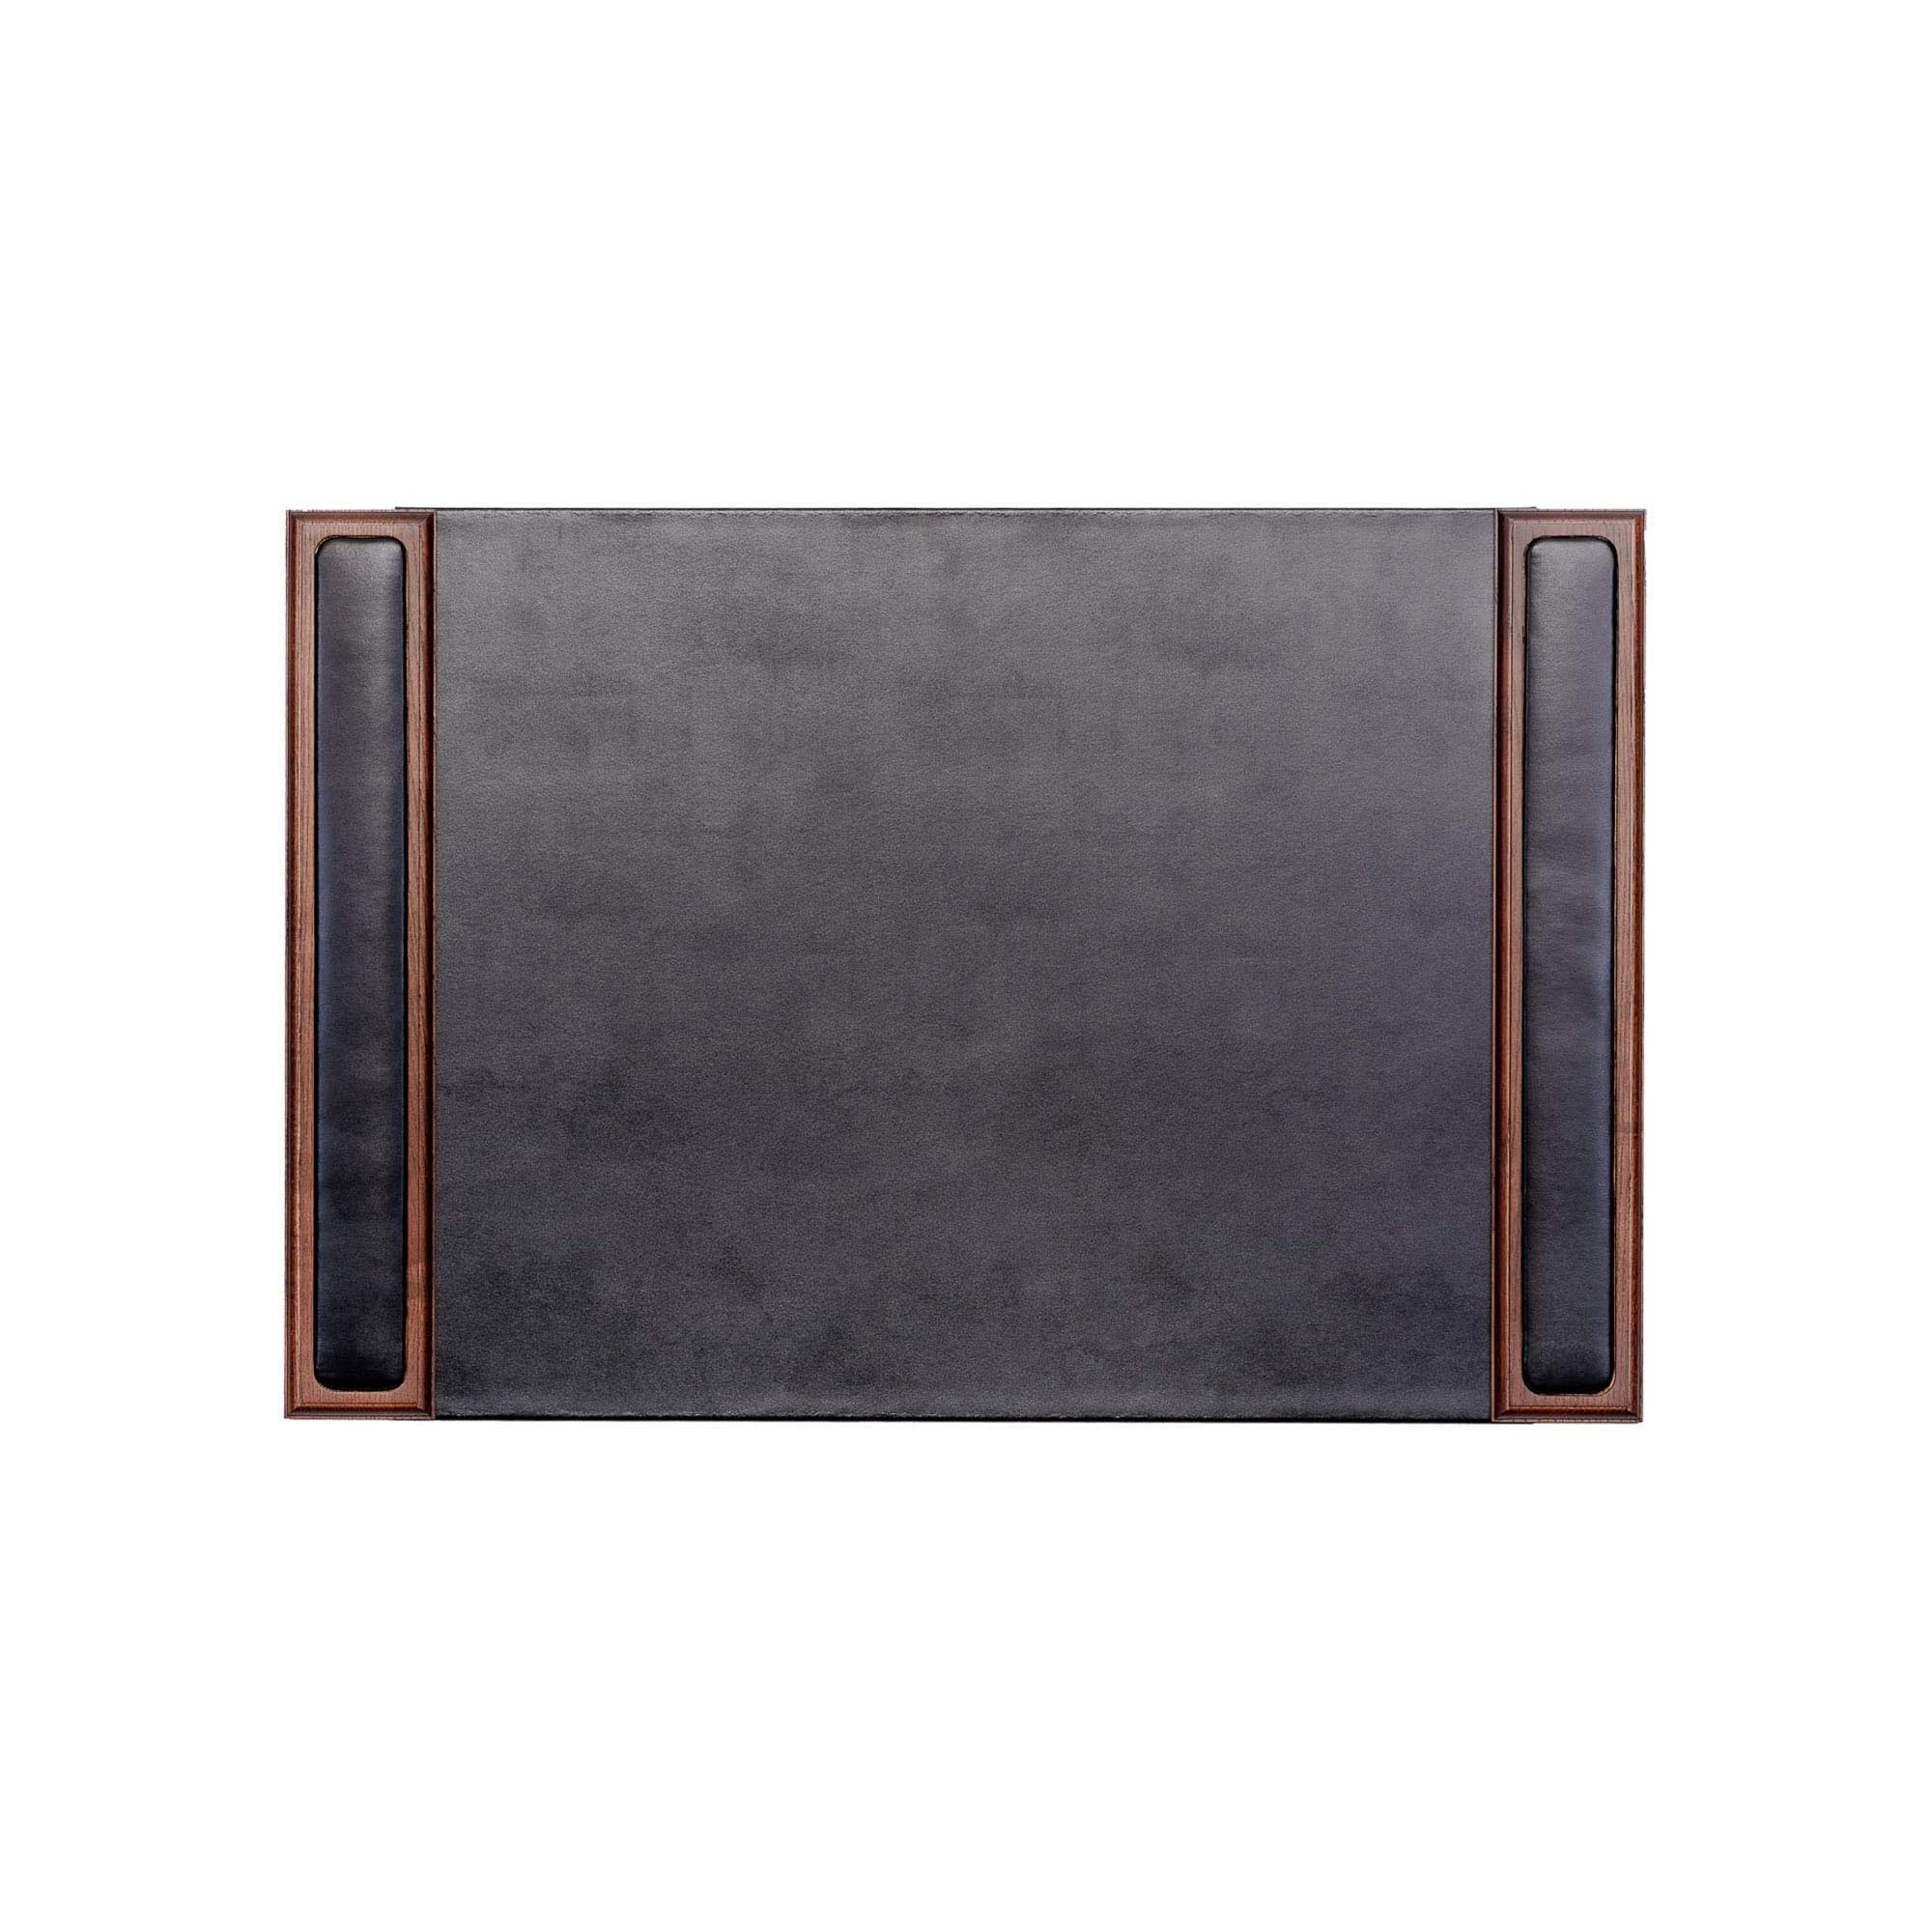 Dacasso Walnut and Leather Desk Pad with Side-Rails,25.5 by 17.25 Inch by Dacasso